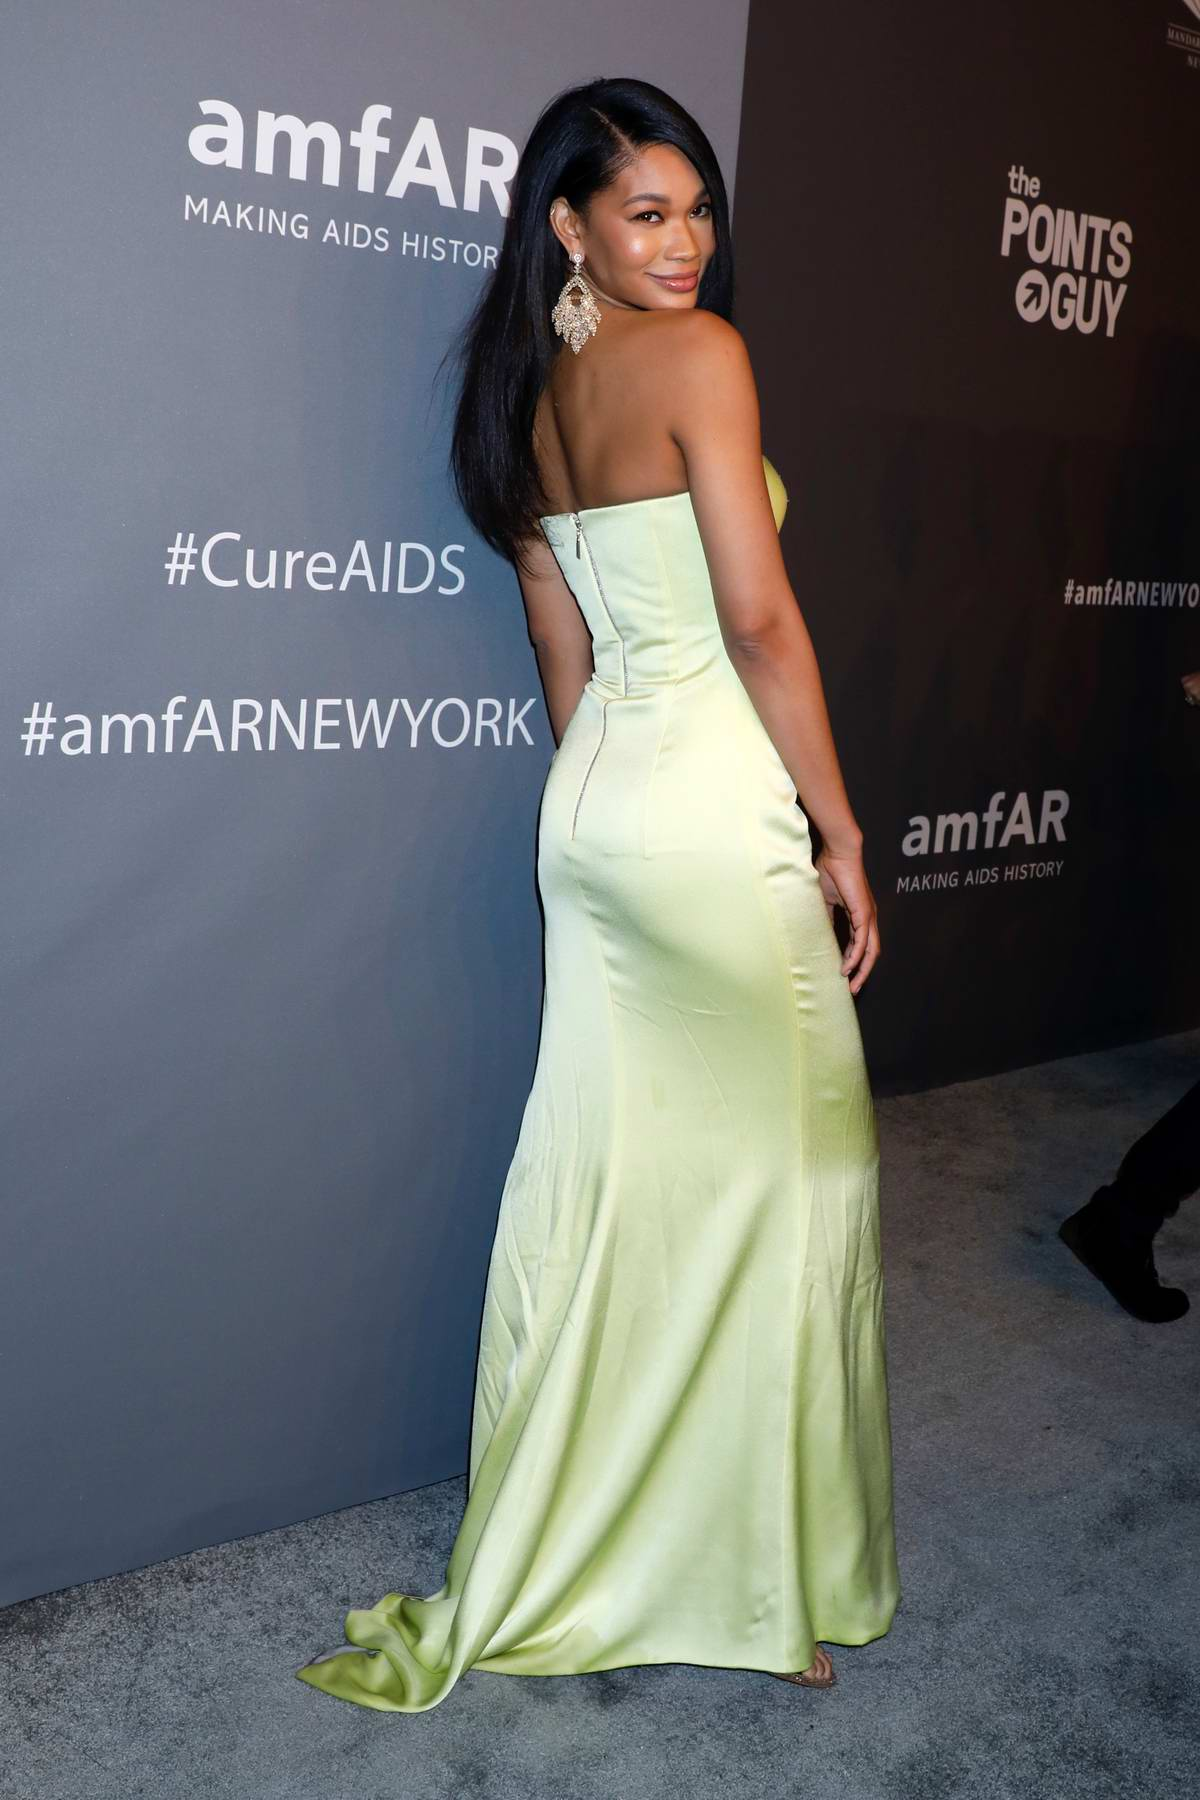 Chanel Iman attends amfAR New York Gala 2019 at Cipriani Wall Street in New York City